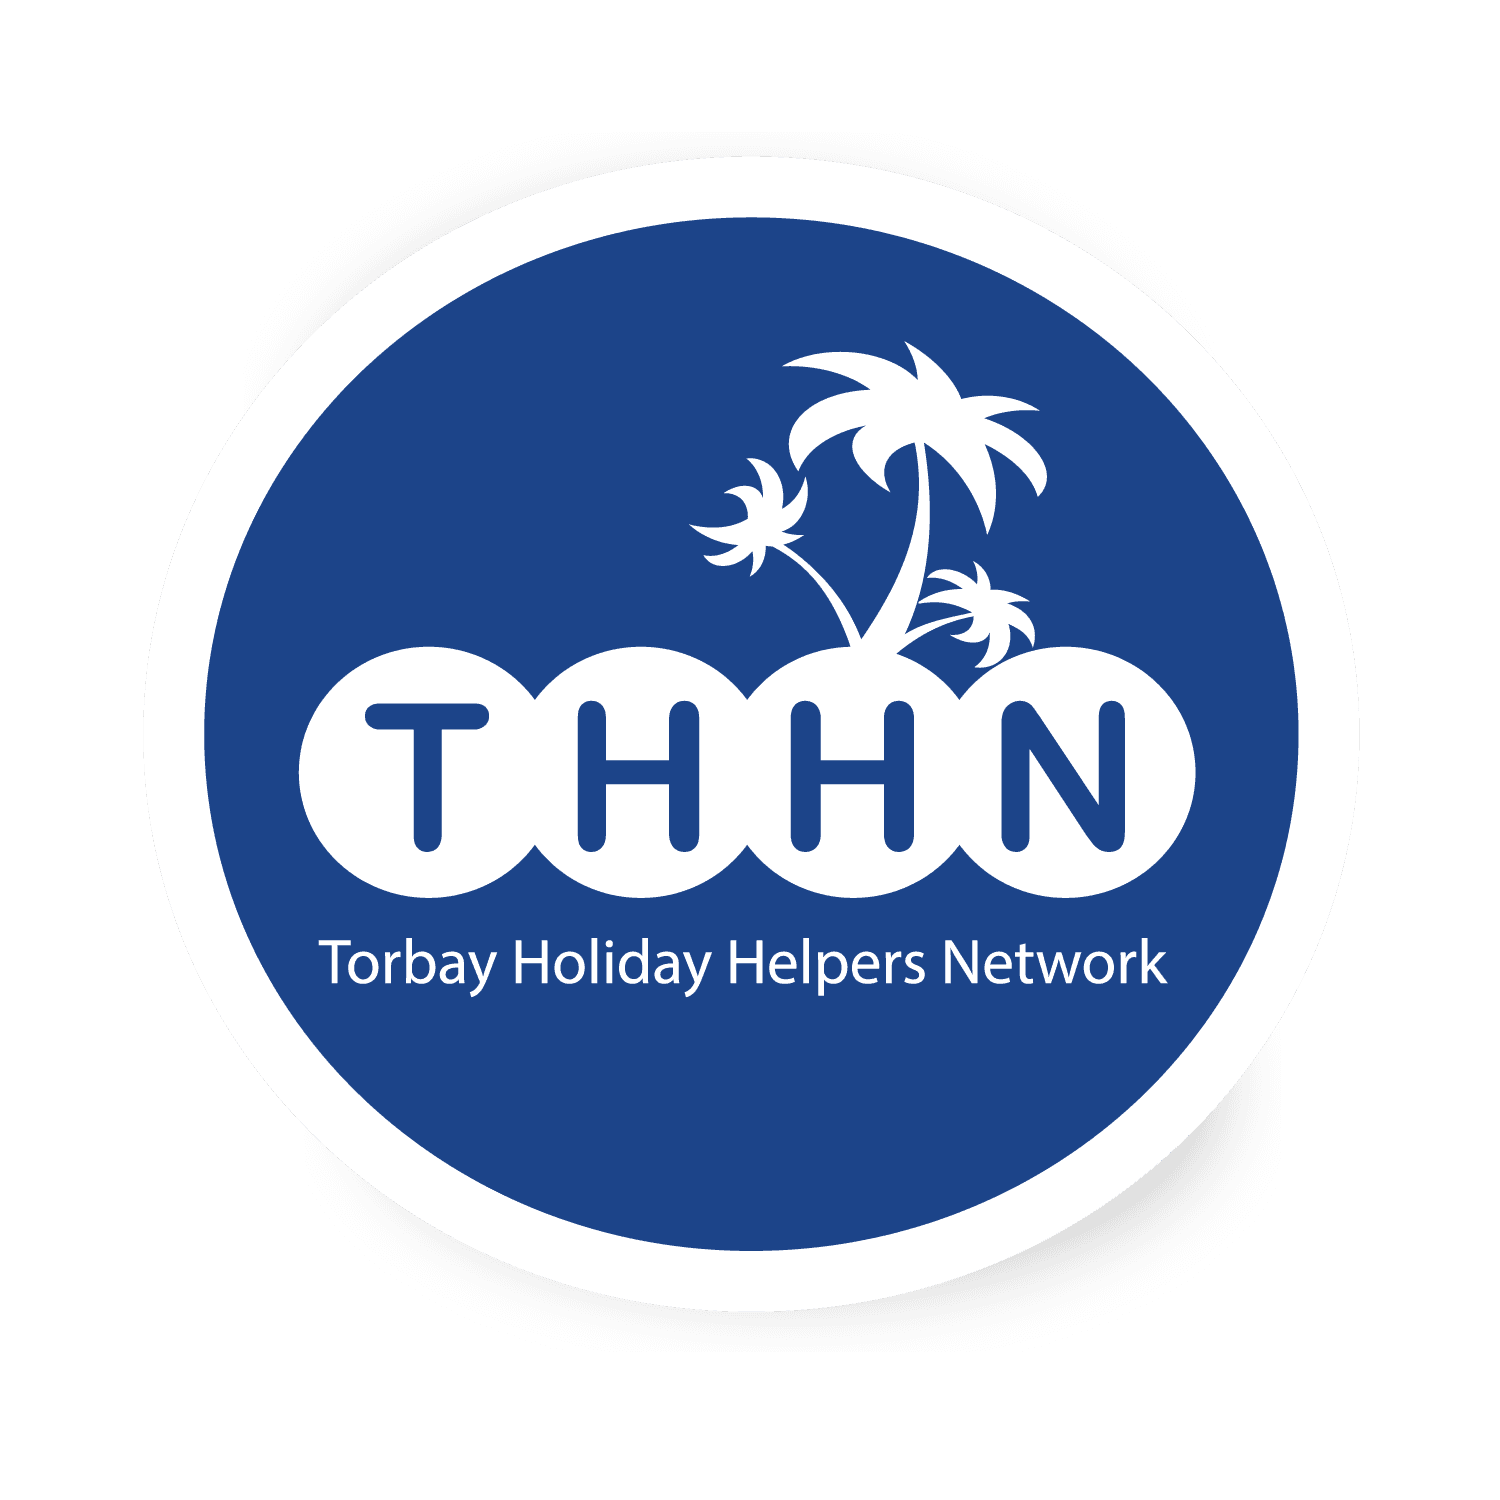 Torbay Holiday Helpers Network